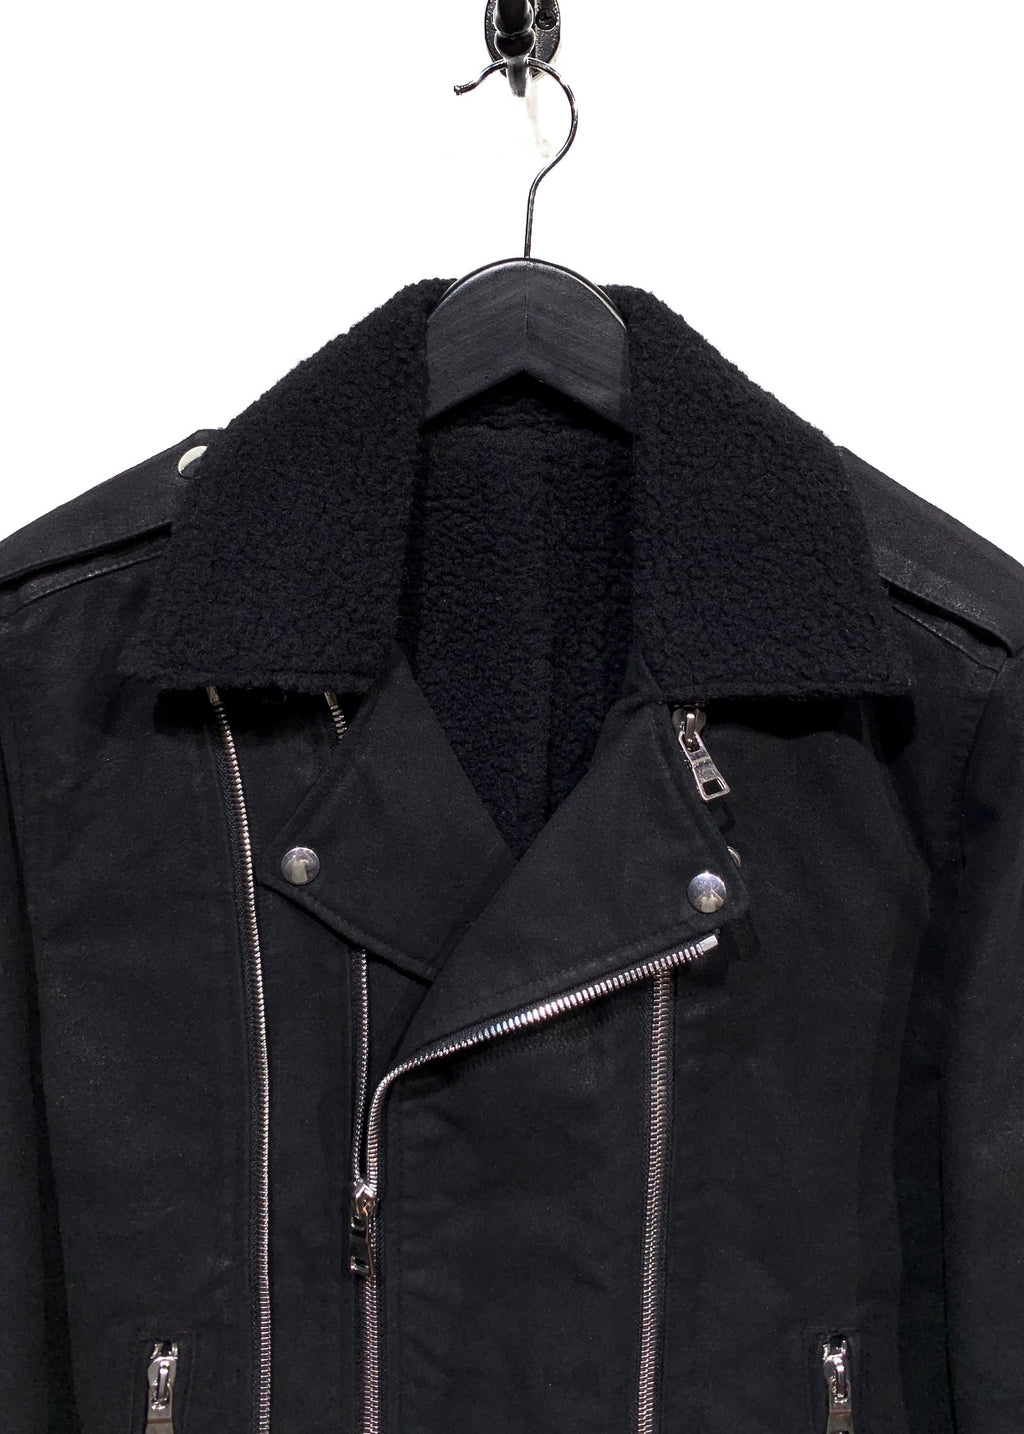 Balmain Black Waxed Cotton and Wool Lined Biker Jacket